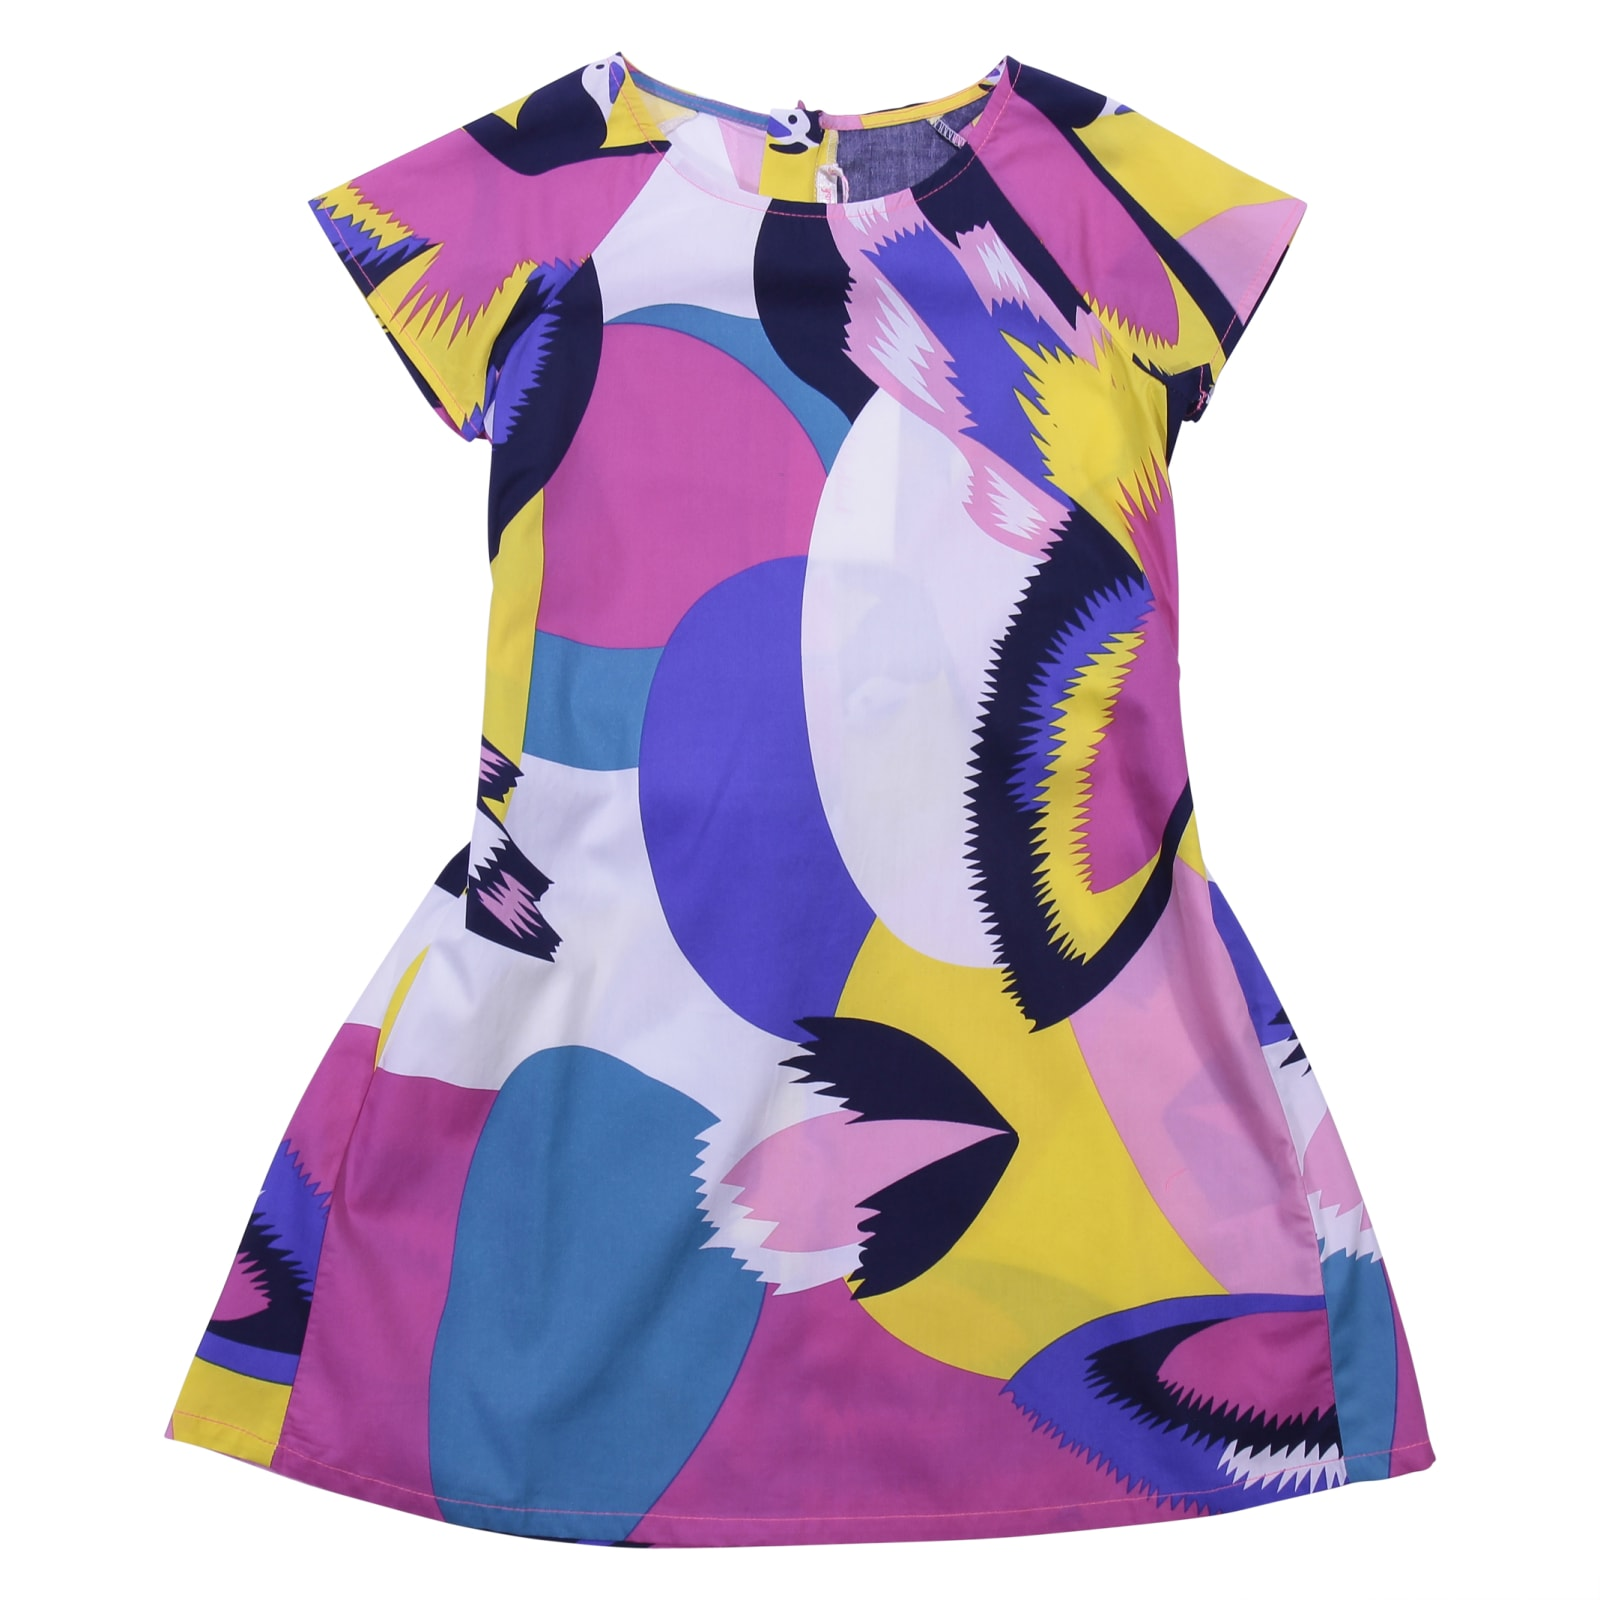 Billieblush Multicolor Print Cotton Poplin Dress